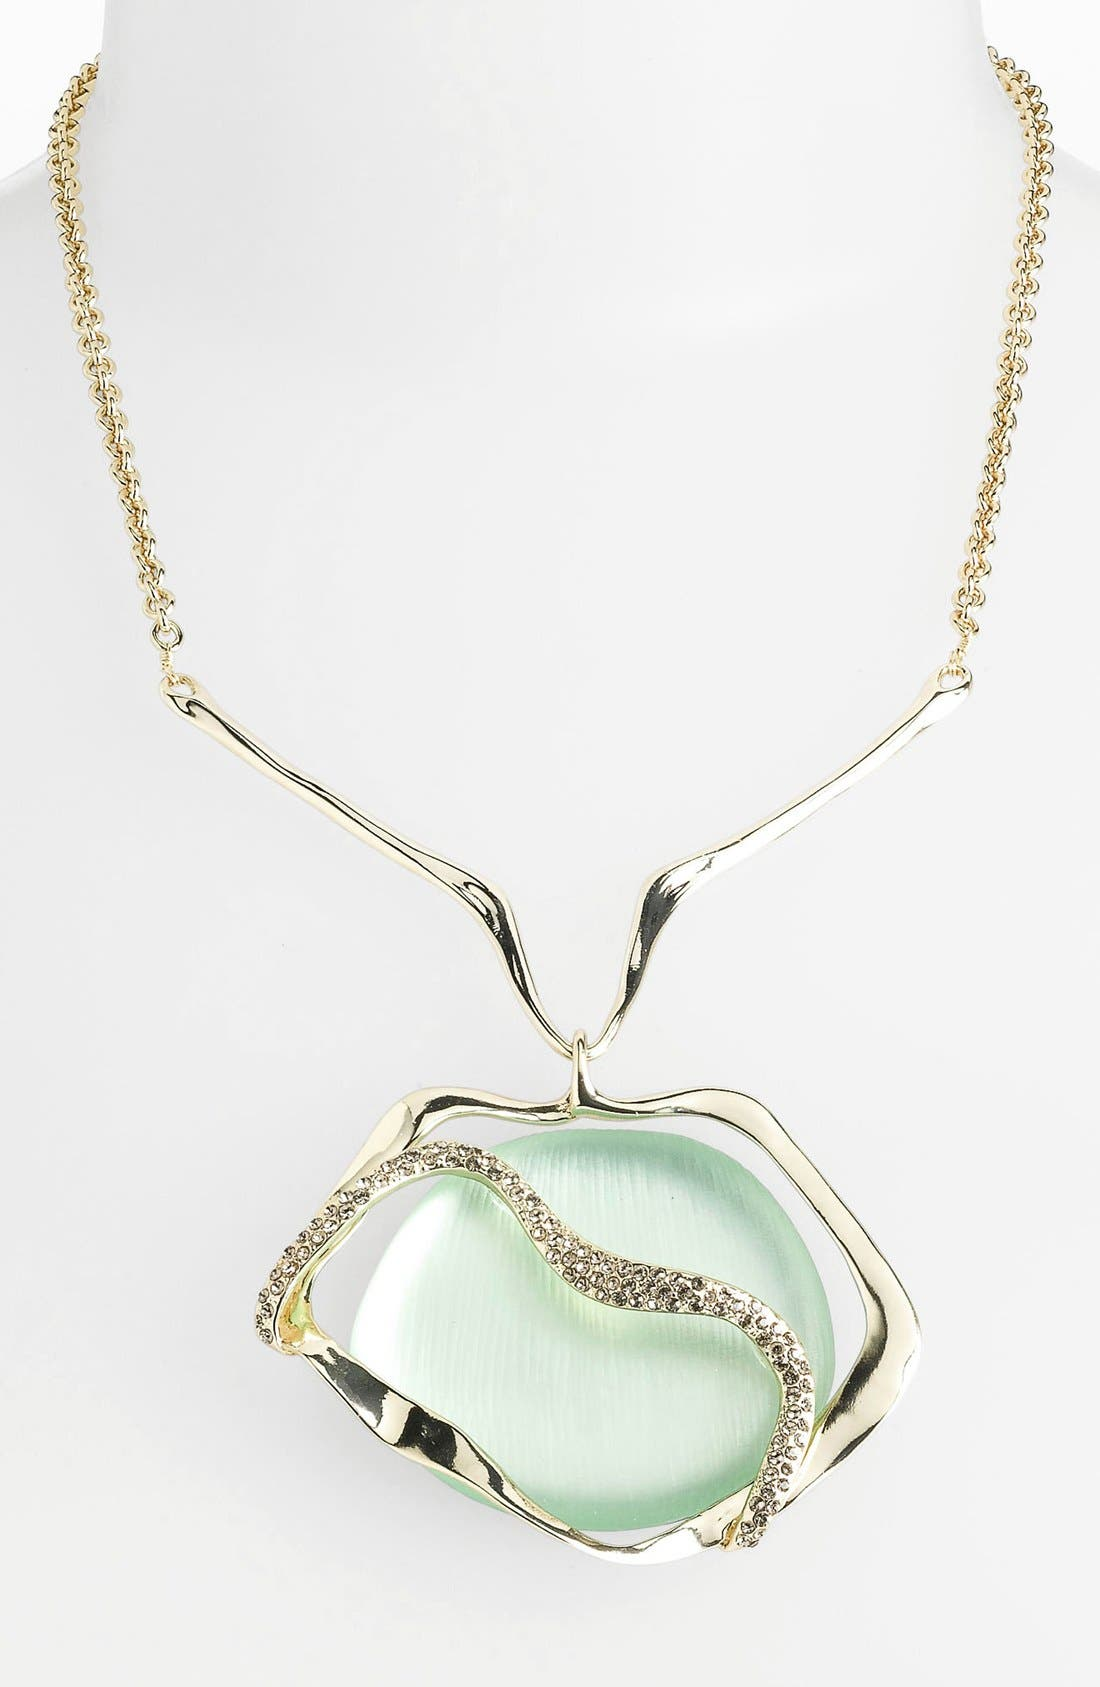 Alternate Image 1 Selected - Alexis Bittar 'Mod' Frontal Necklace